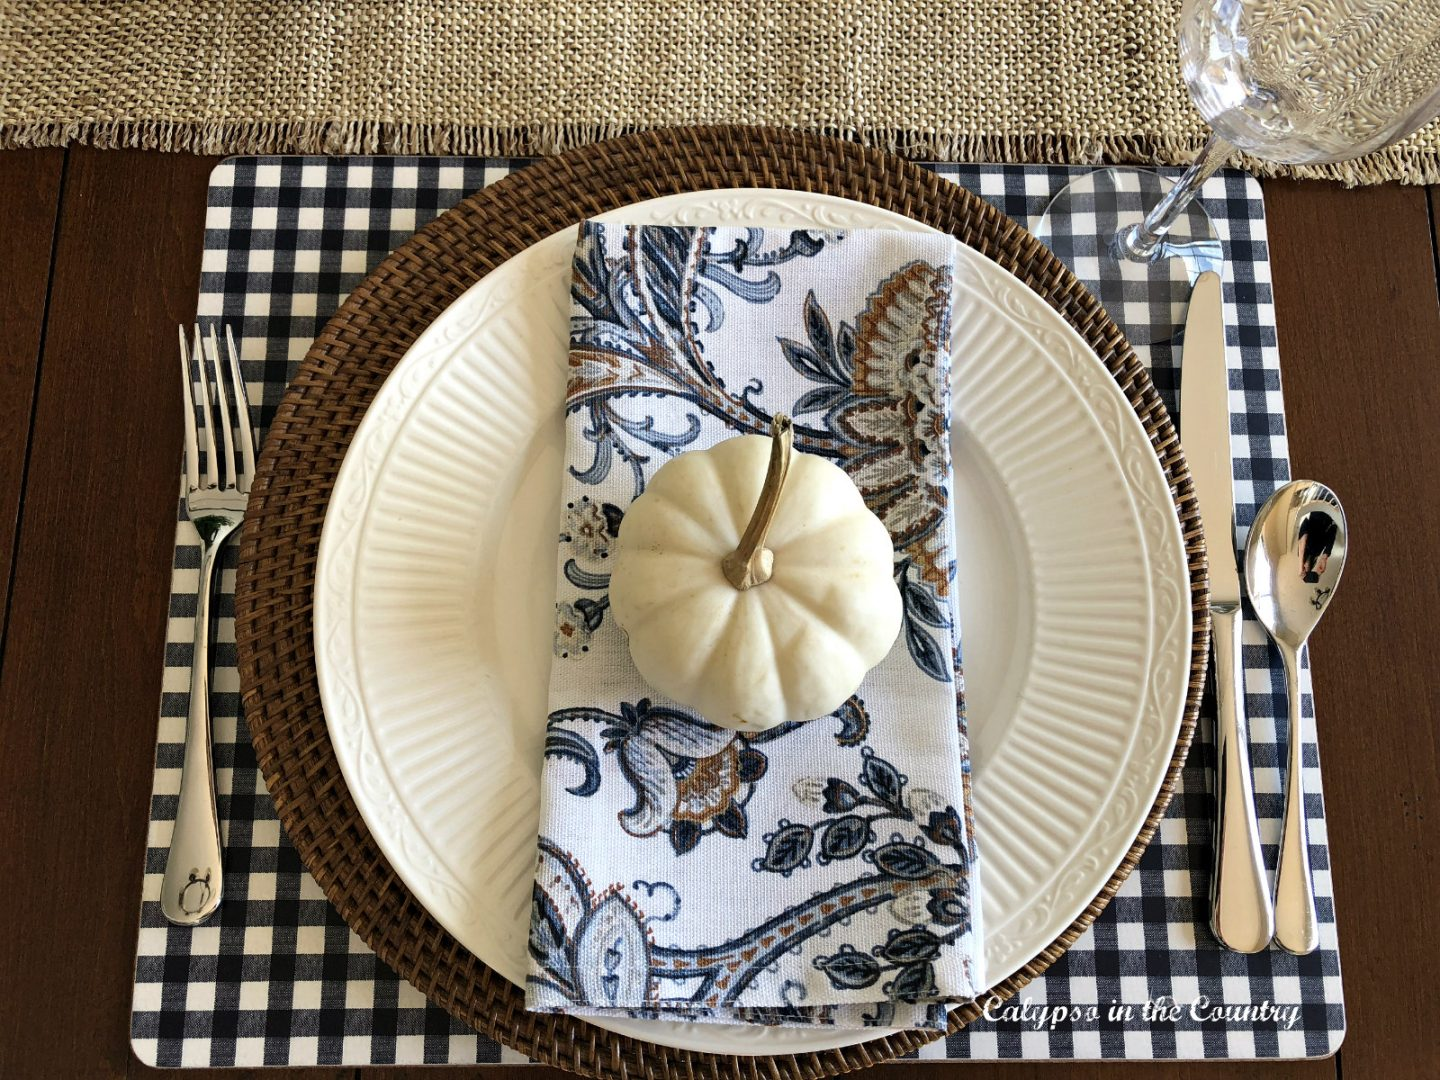 Fall table setting with blue and white checked placemat and white pumpkin